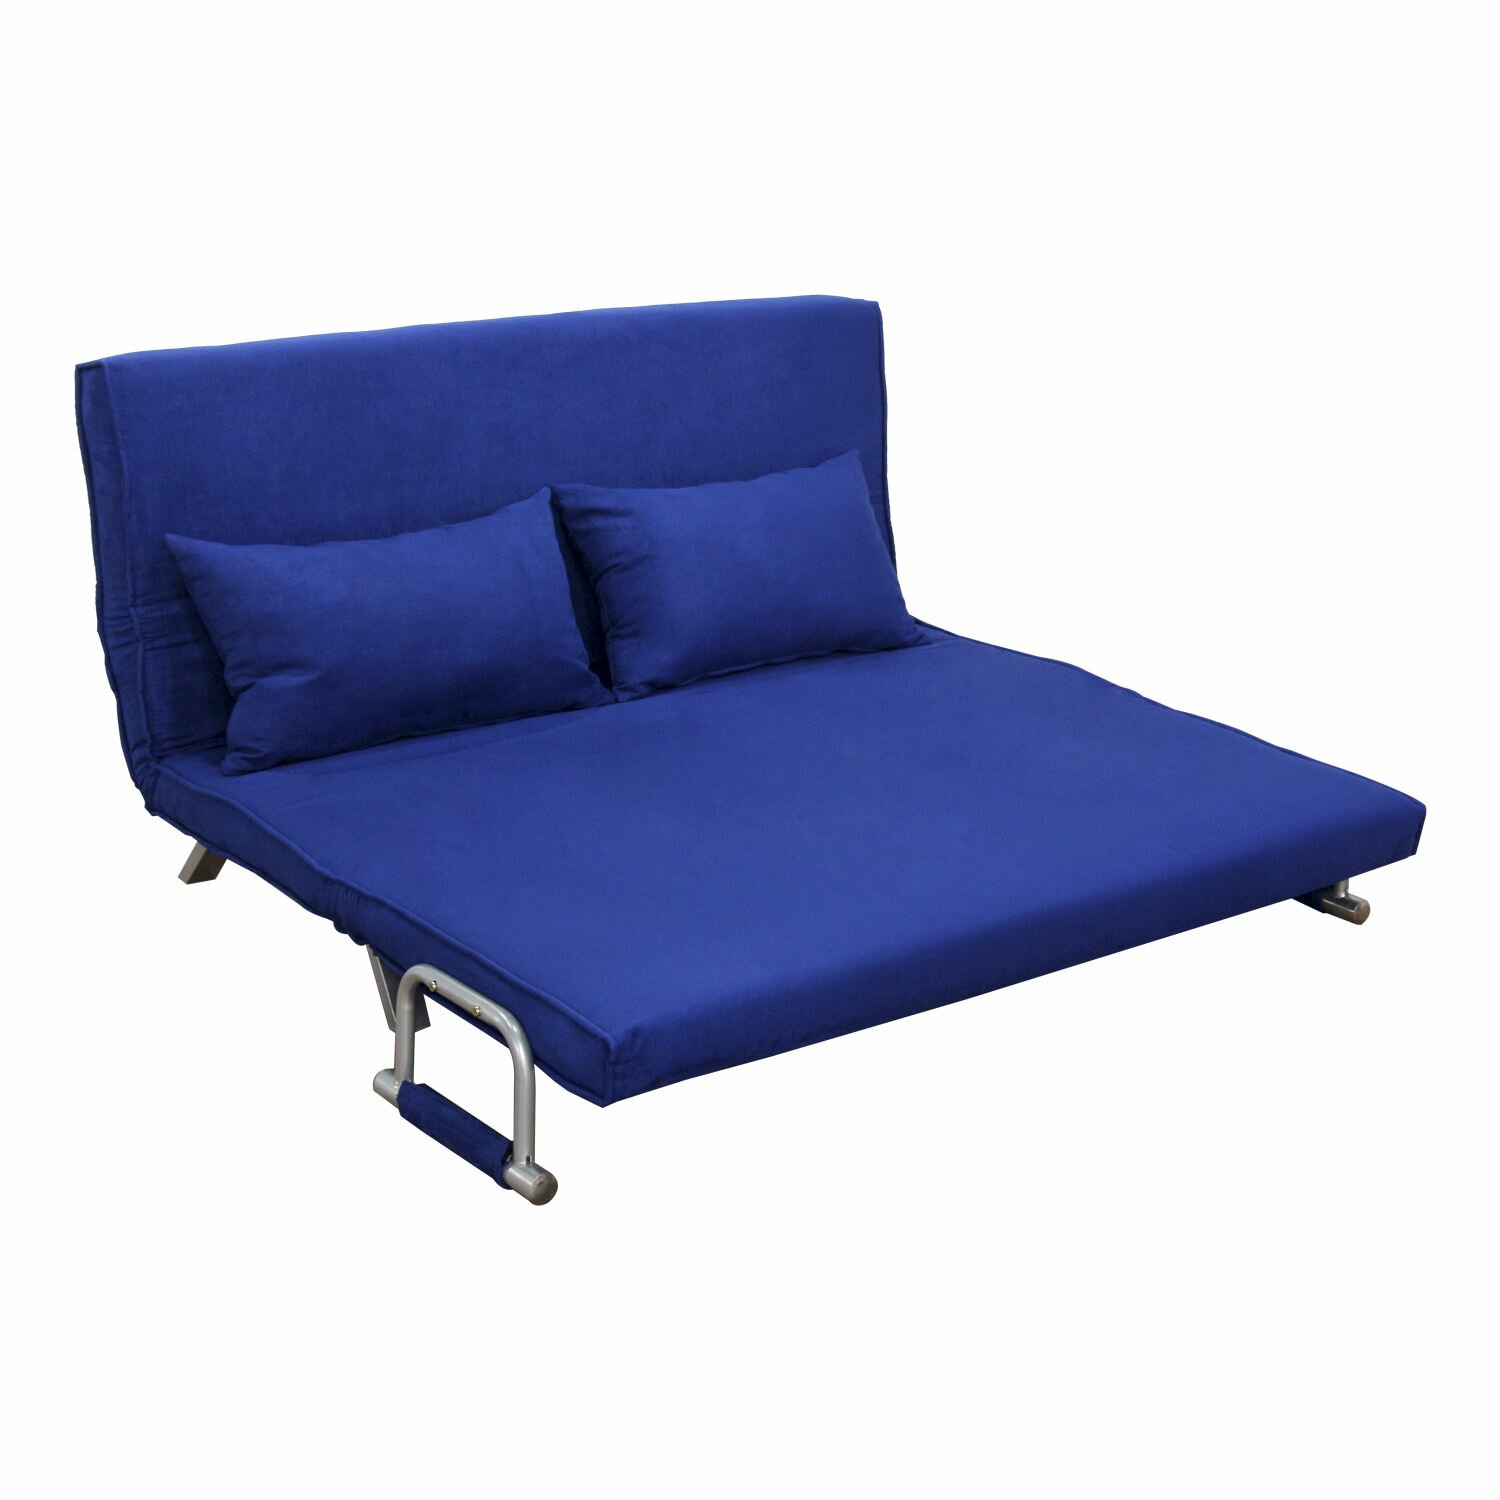 Folding Futon Couch Sleeper Sofa | Wayfair